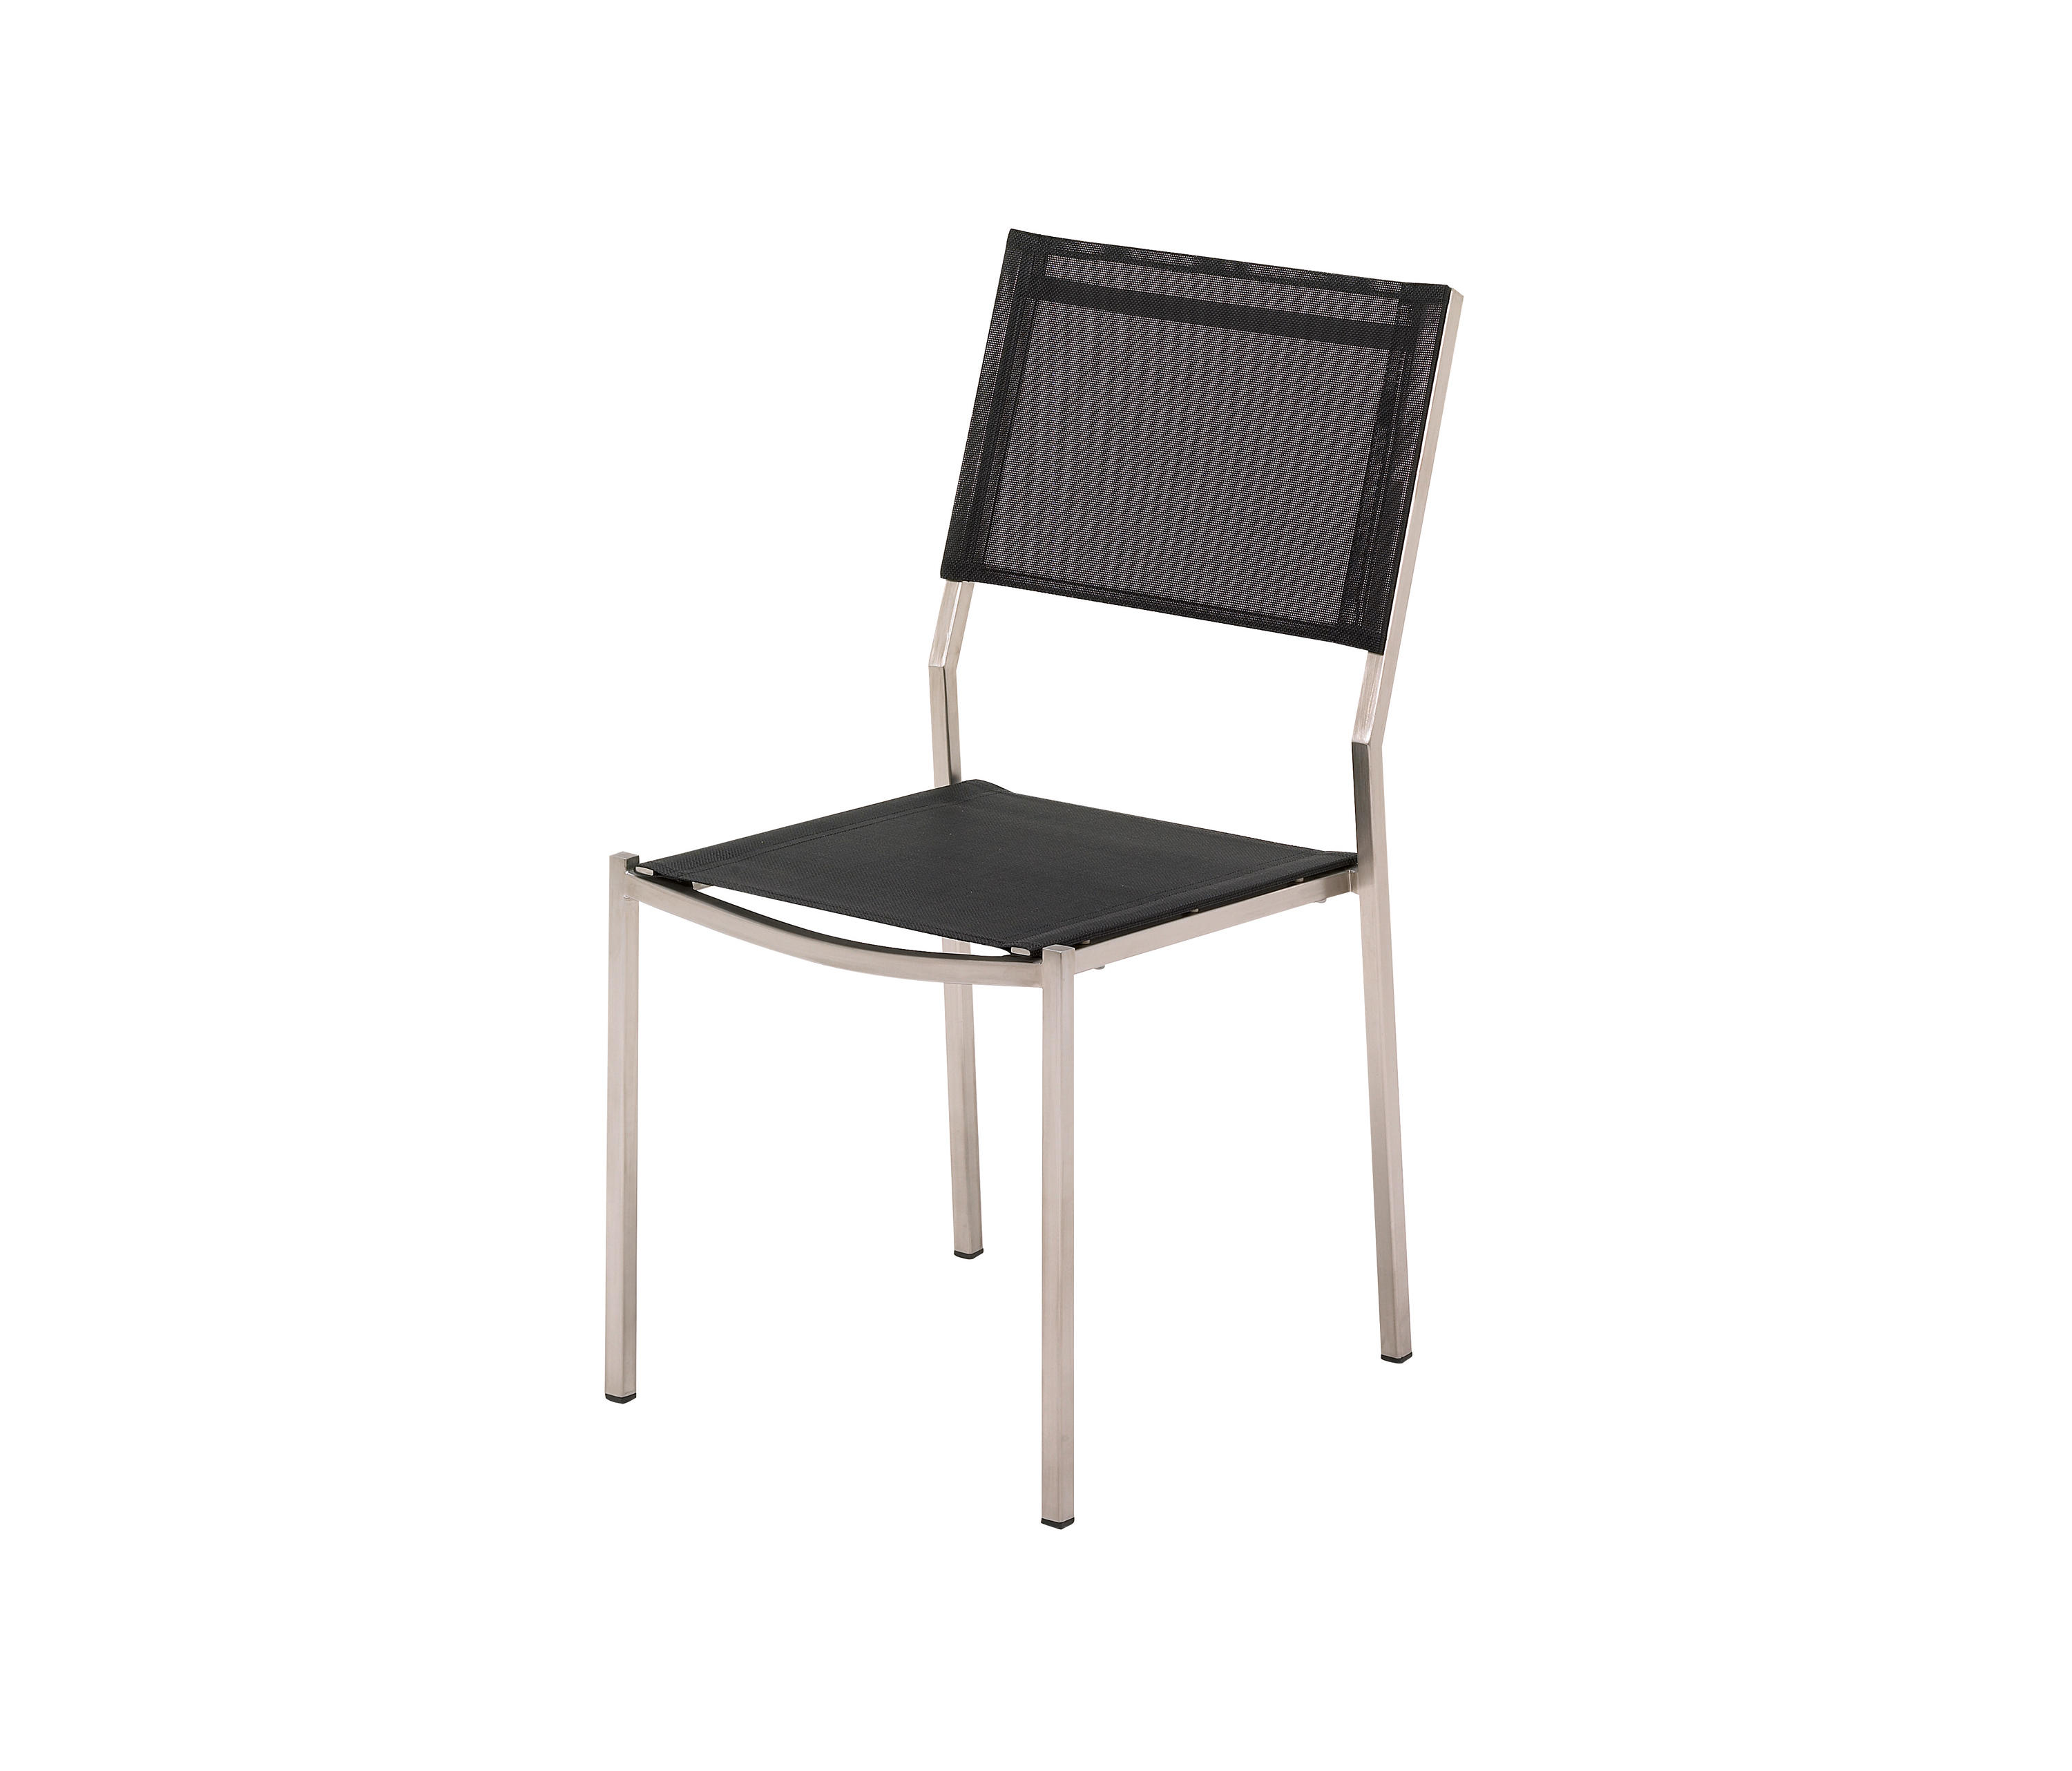 VIGO STACKING CHAIR Garden chairs from Gloster Furniture GmbH